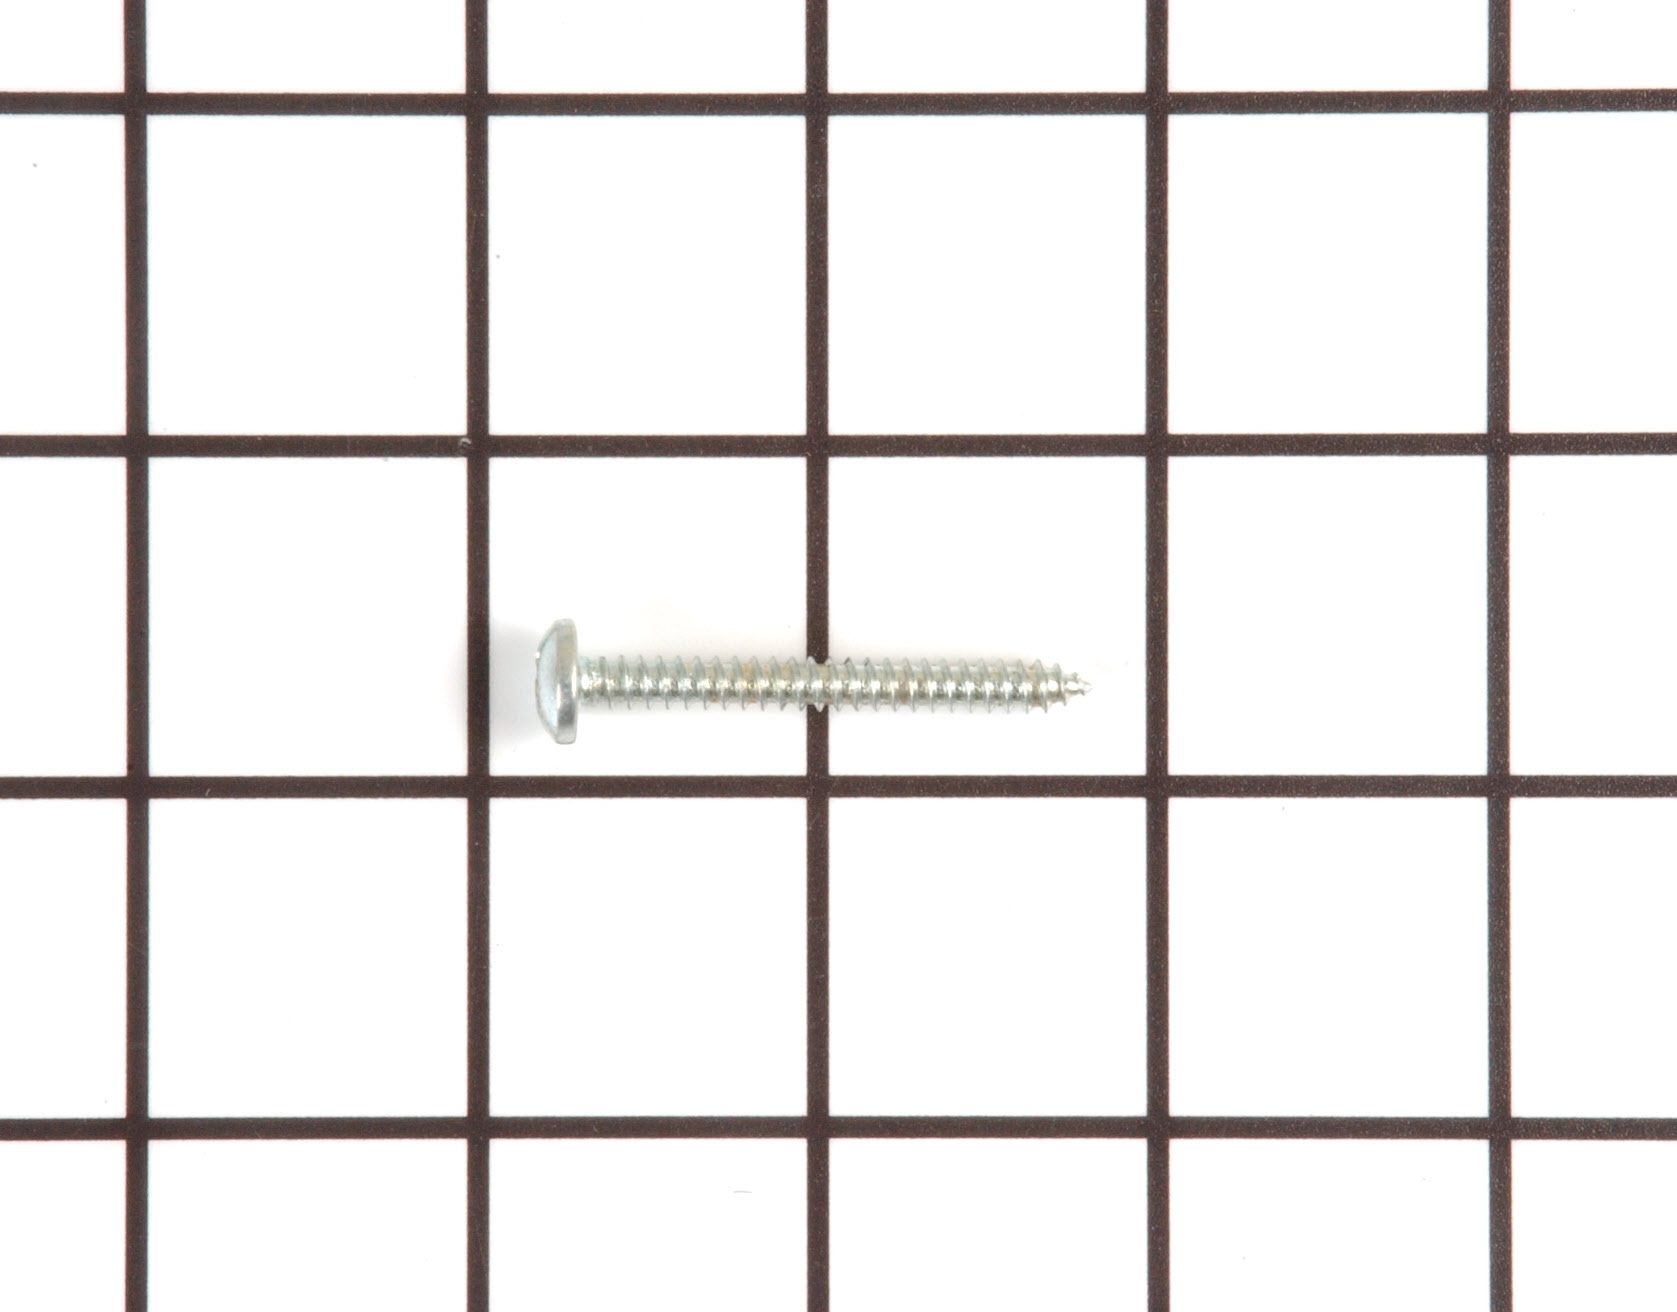 KitchenAid Refrigerator Part # 3196180 - Screw